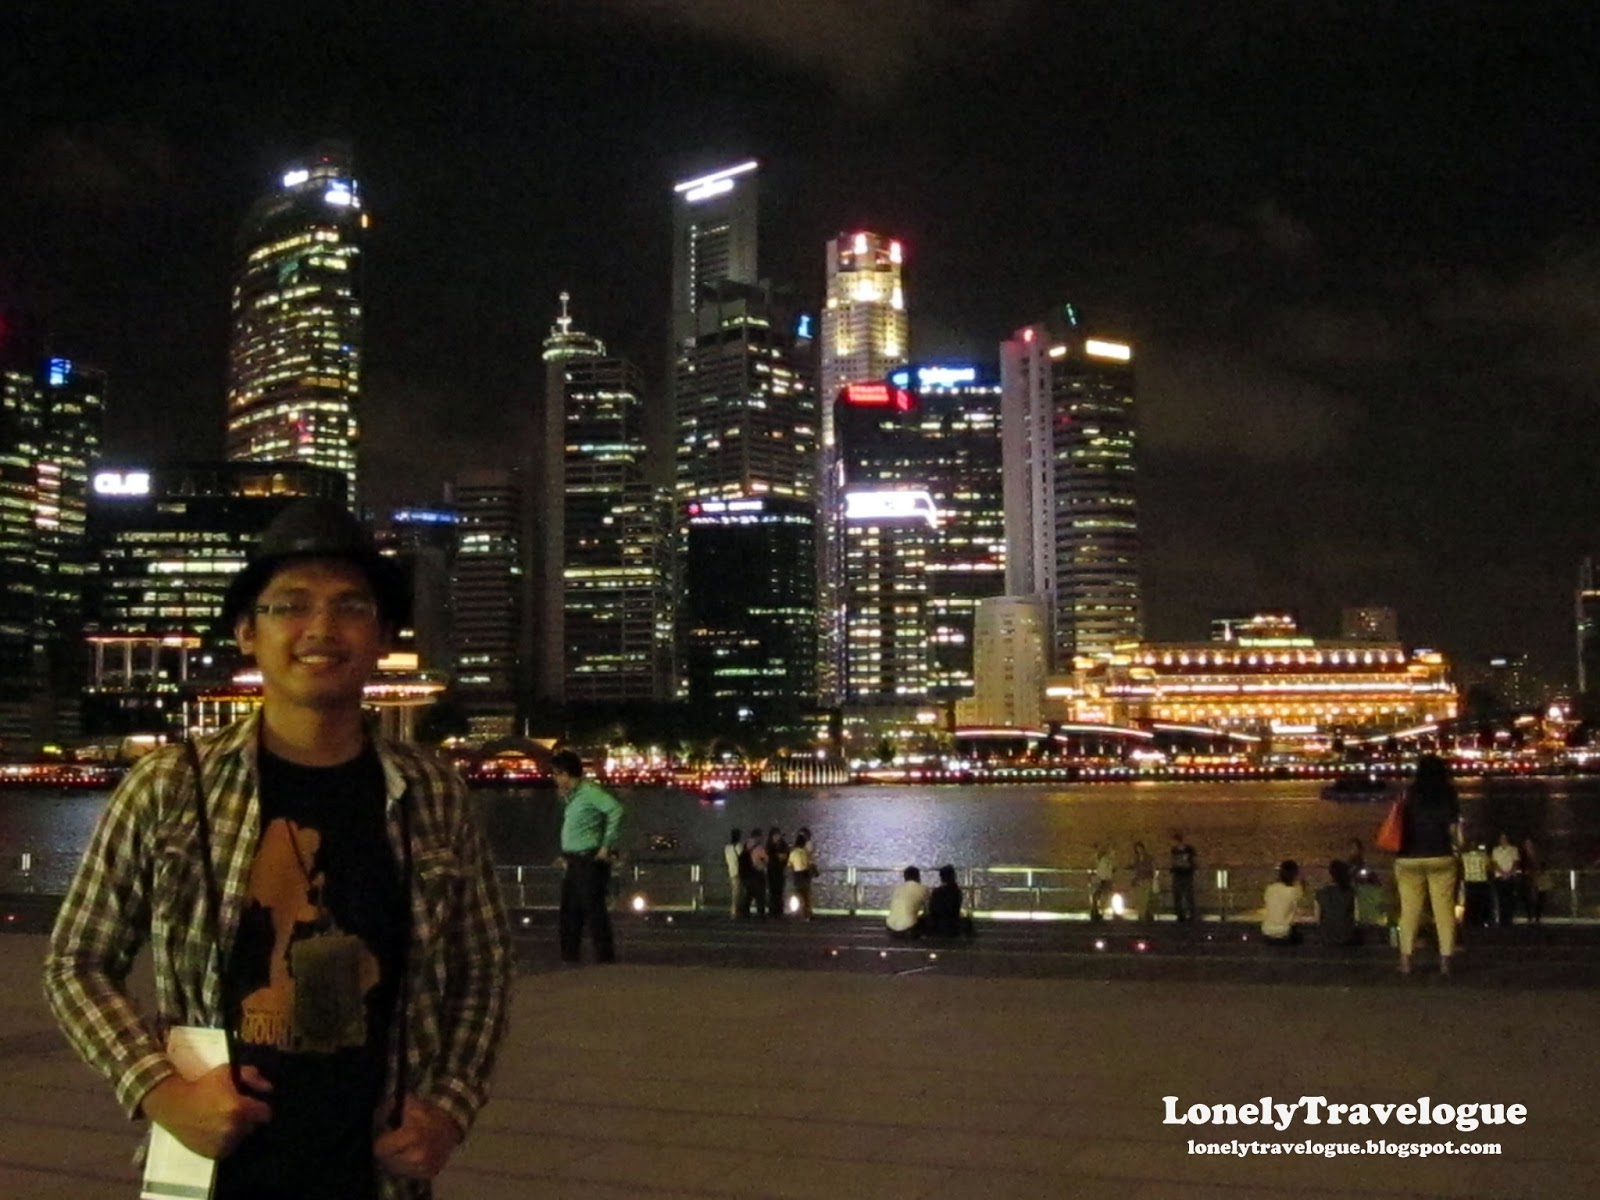 Lonely Travelogue Backpacking 101 Budget And Itinerary